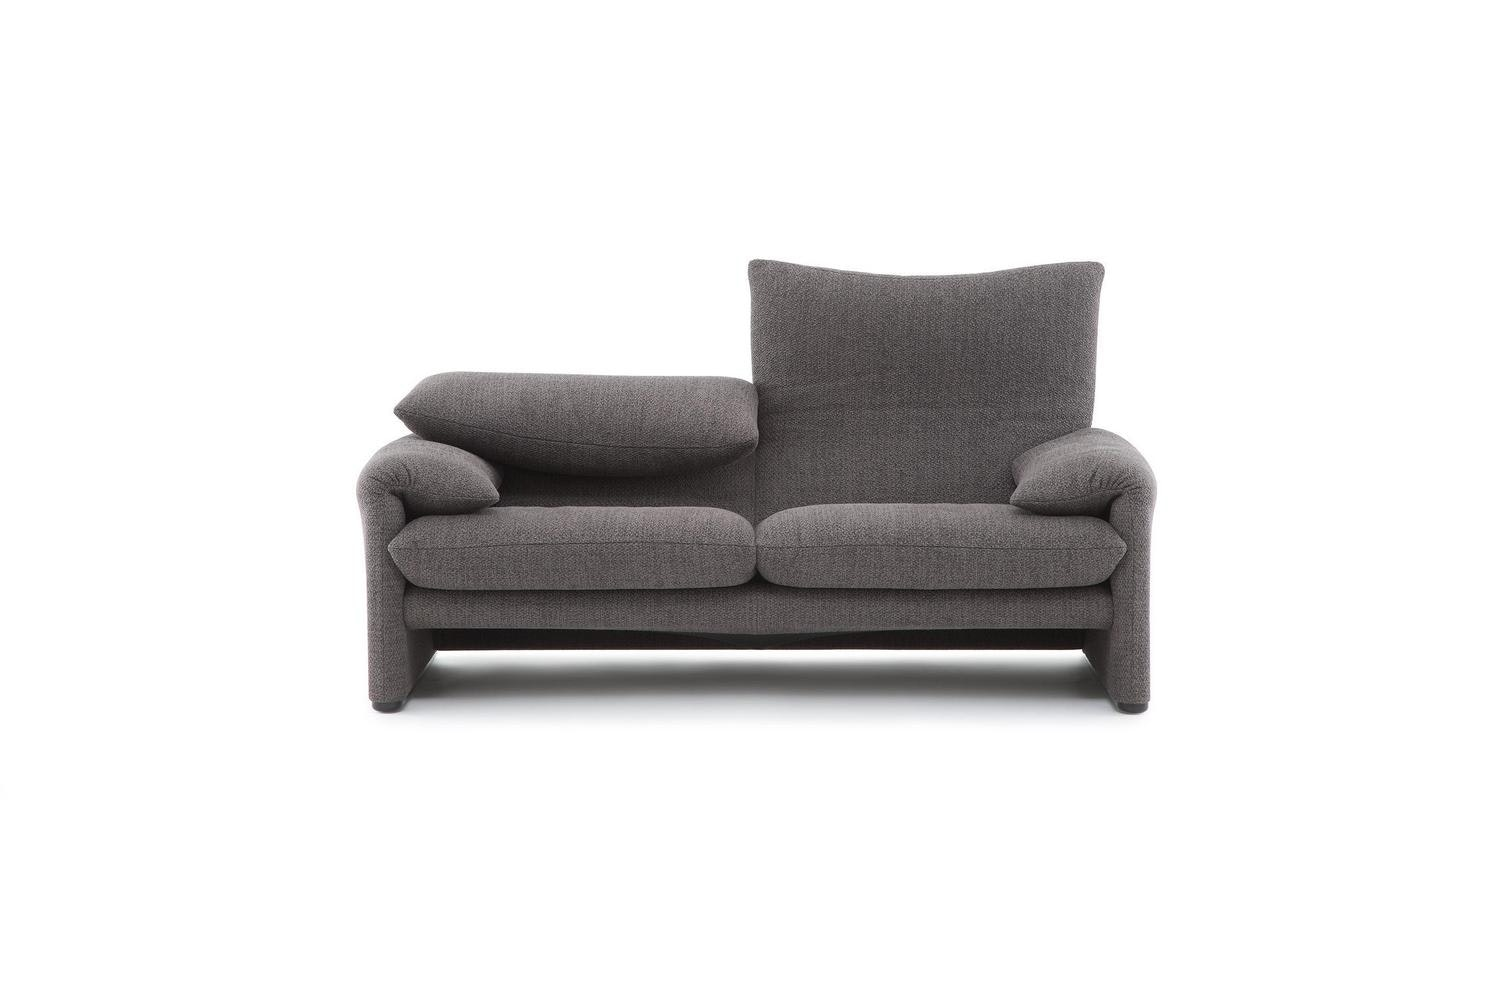 675 Maralunga Sofa by Vico Magistretti for Cassina